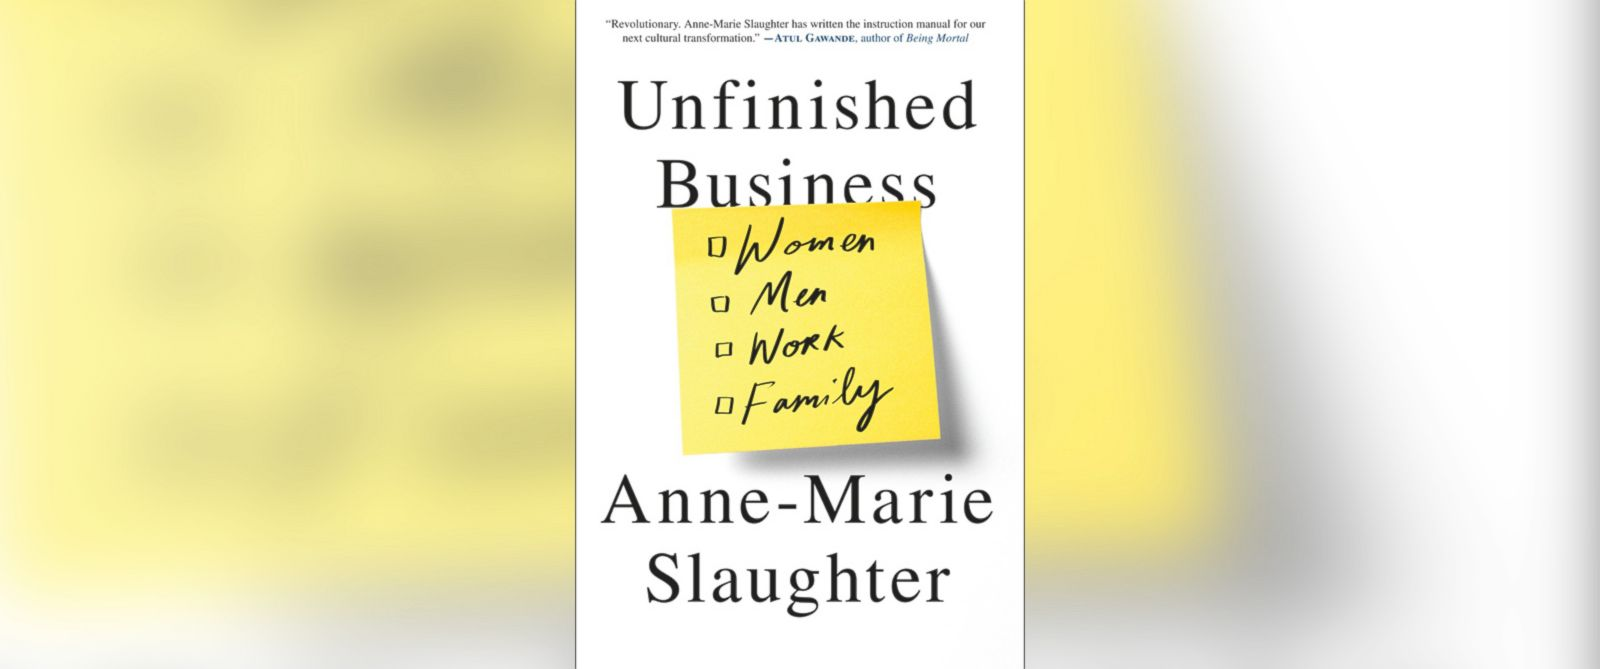 Anne-Marie Slaughter's Vision for Women, Men, Work and Family